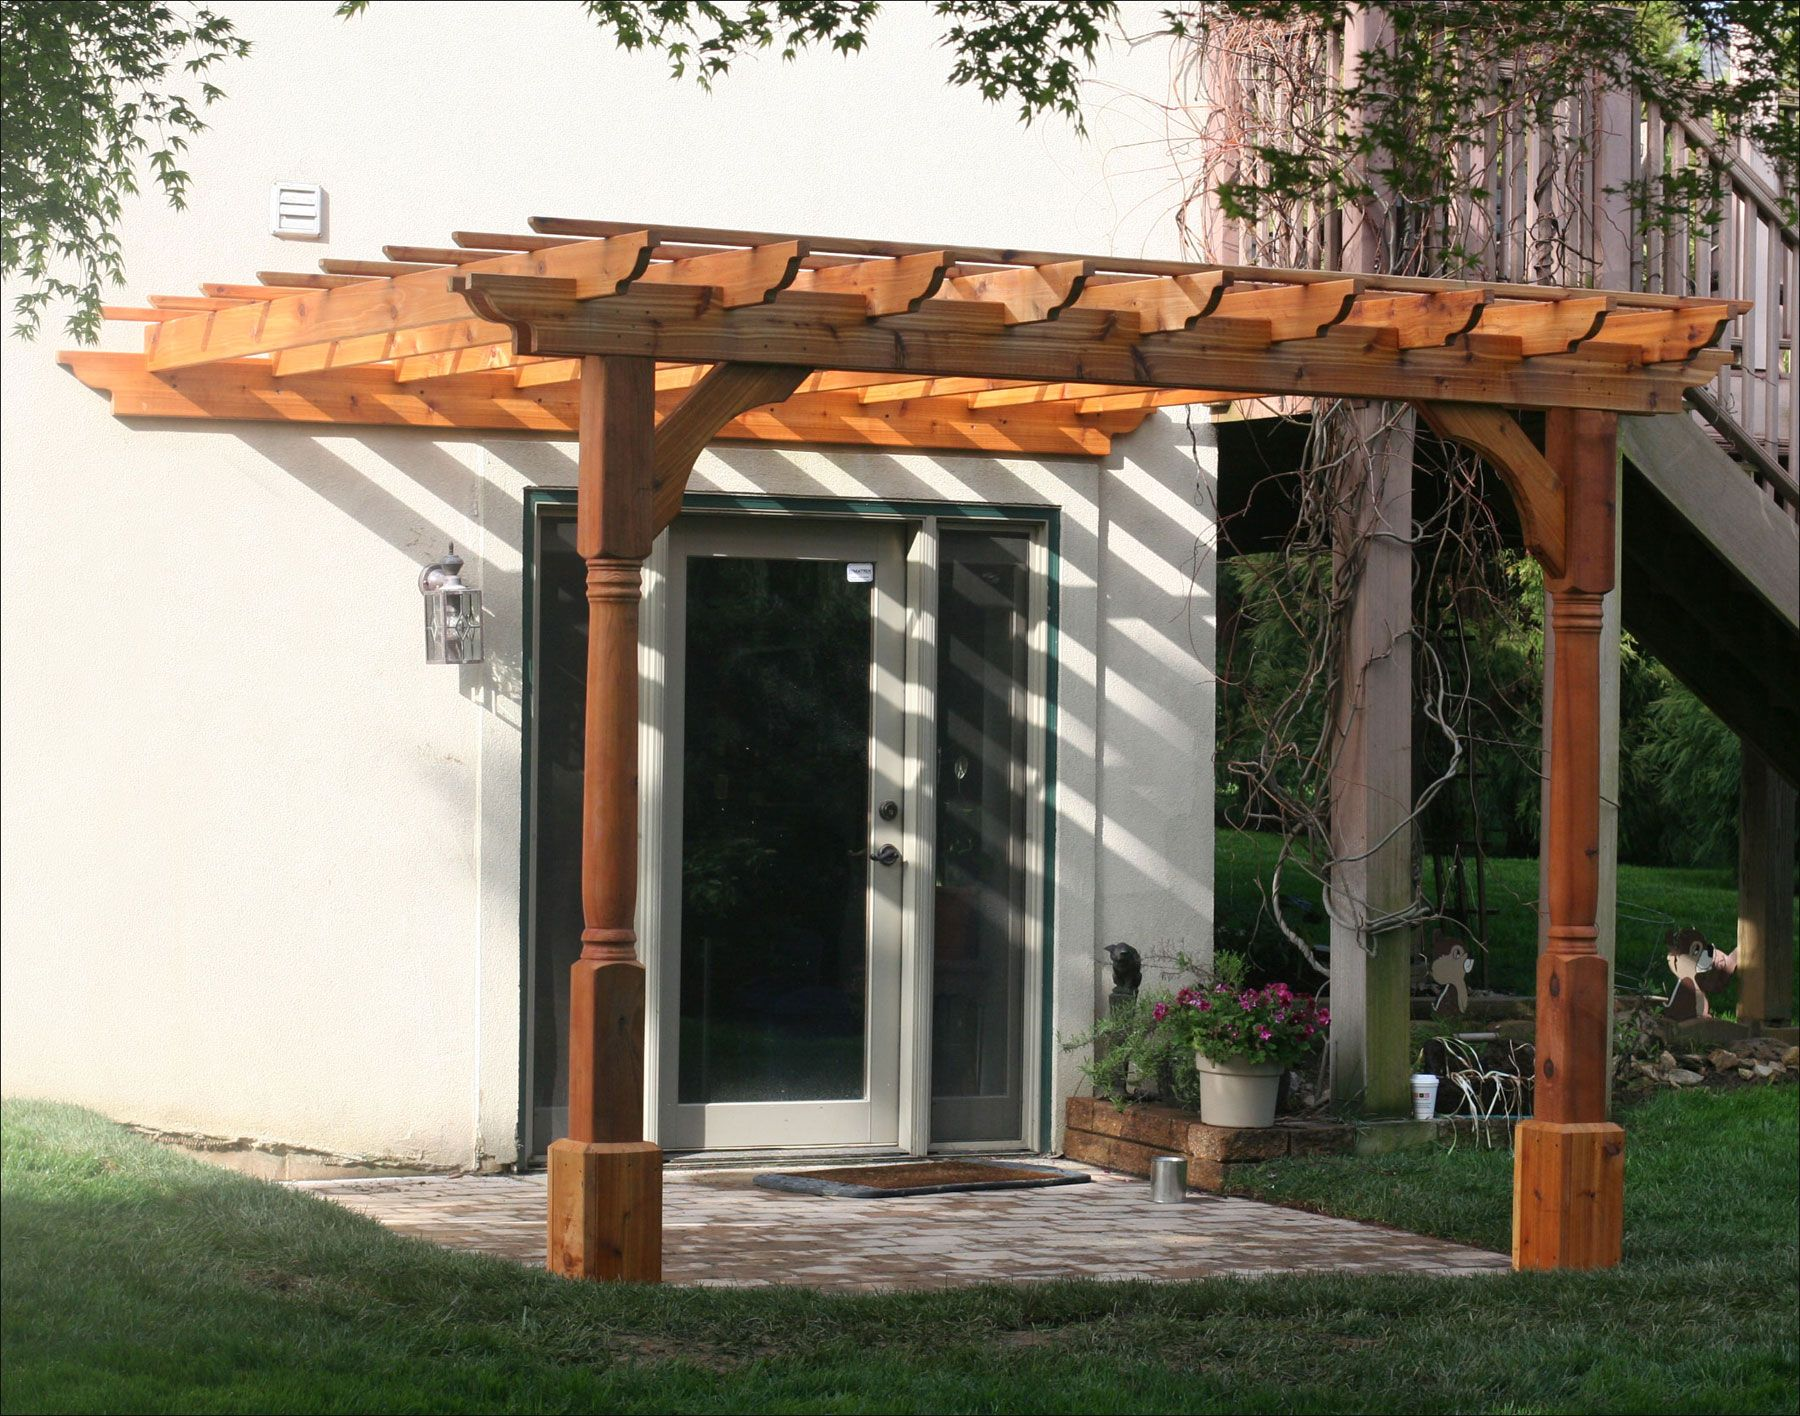 eyebrow pergola kits wall mount 10 x 10 cedar 2 beam on wall mount id=60069